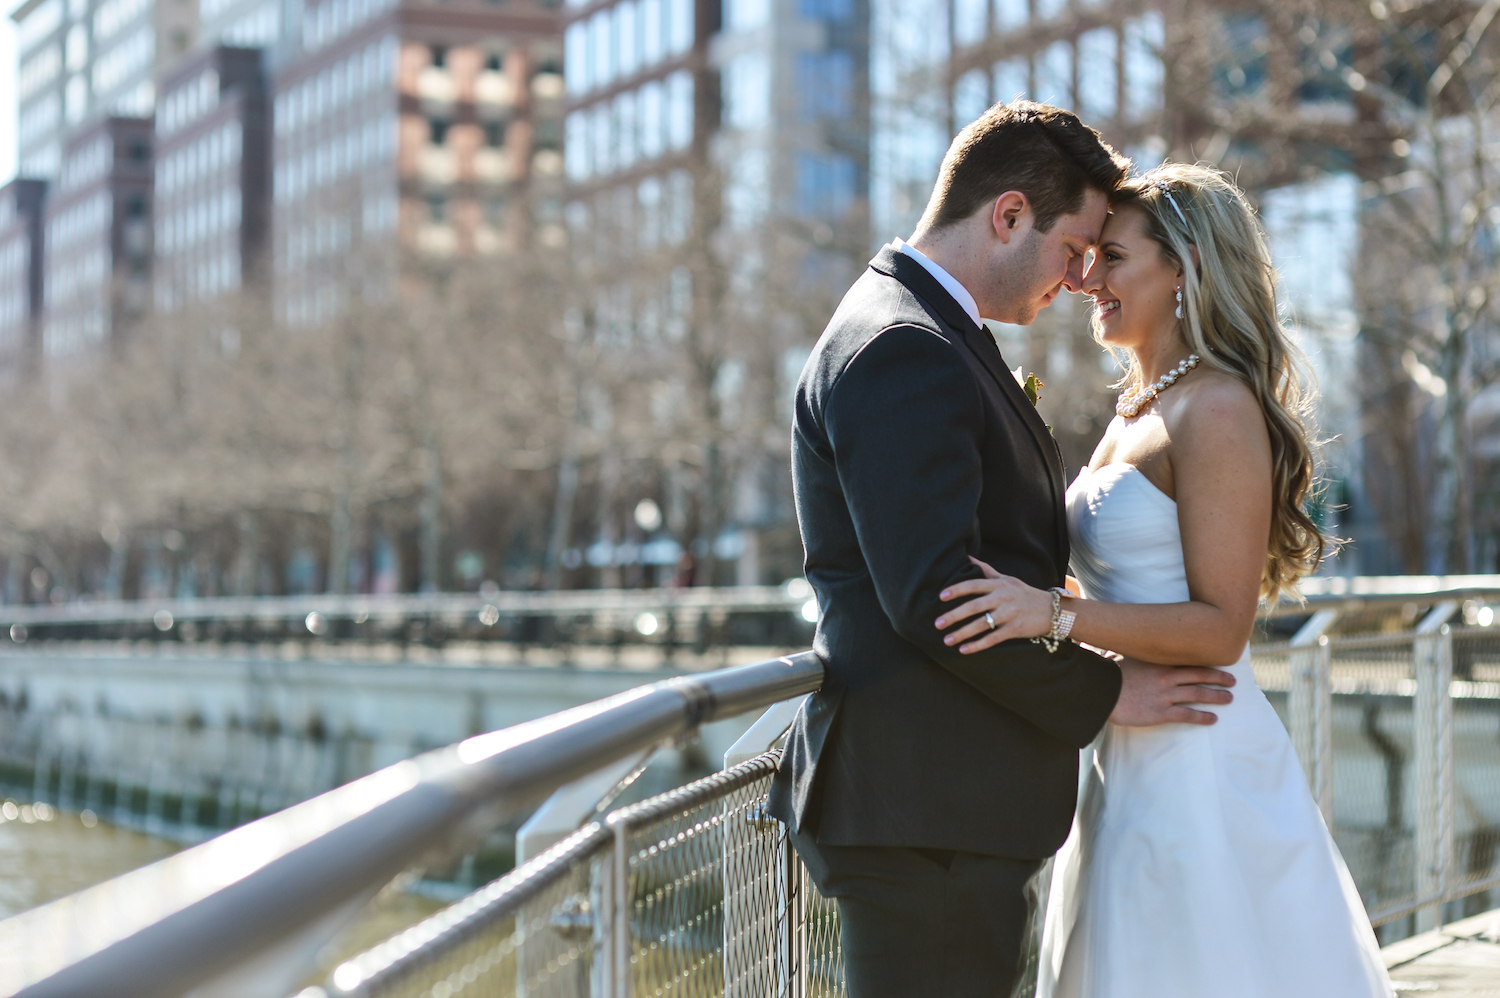 annie&adam-embracing-by-water-wedding-photography-nj